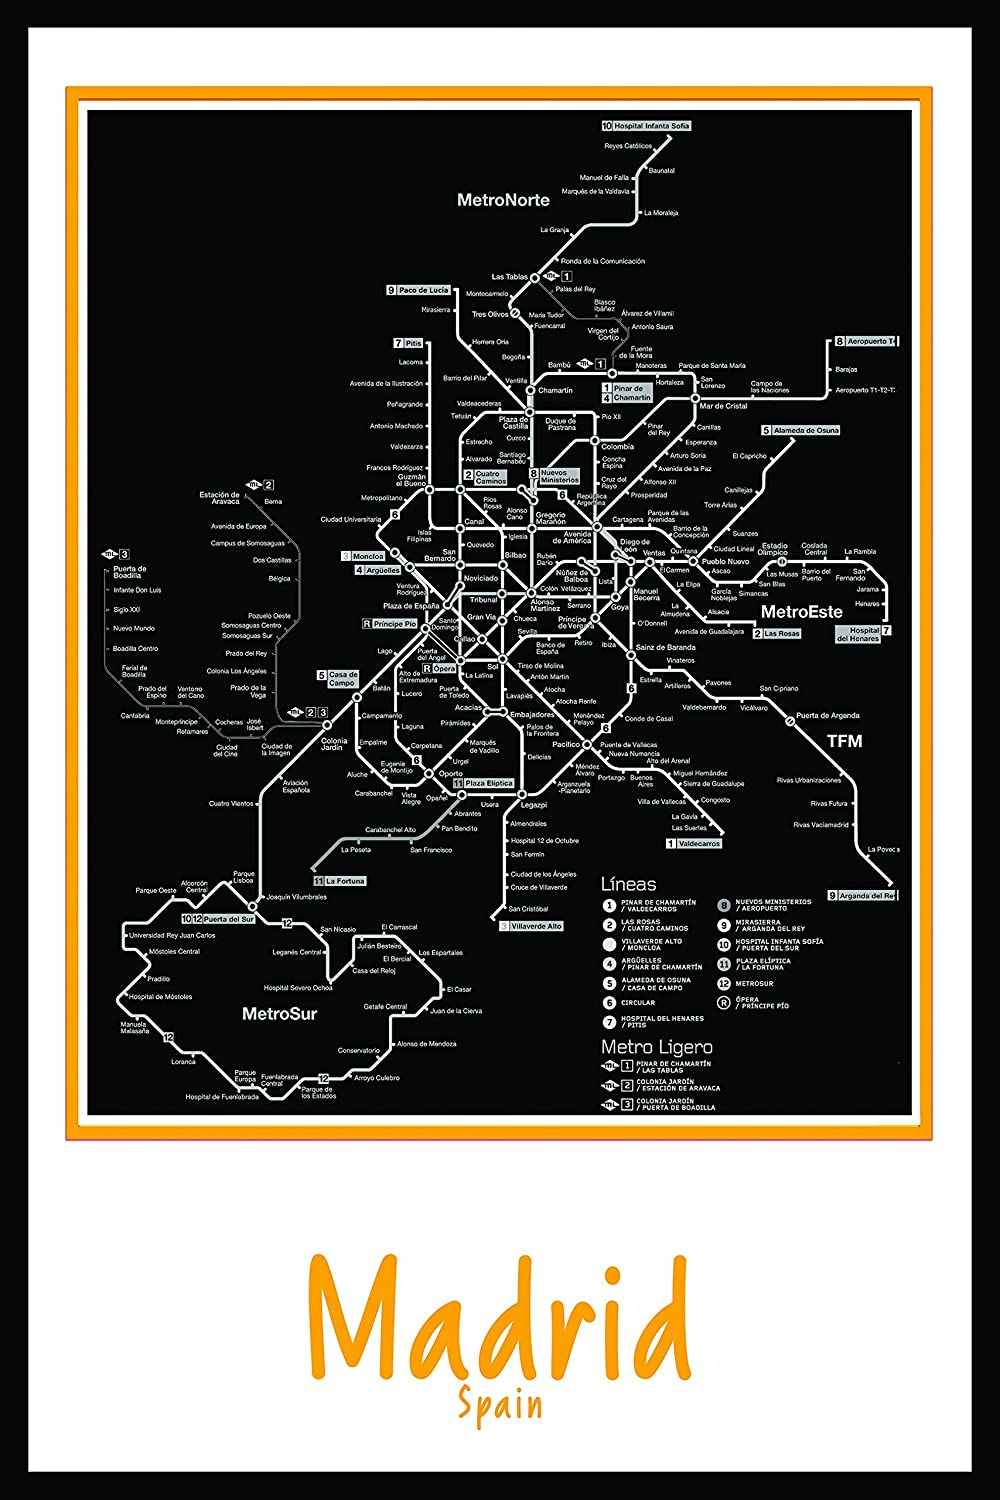 Amazon.com: Madrid Spain Subway map wall art decor by Buttered Kat: Posters & Prints